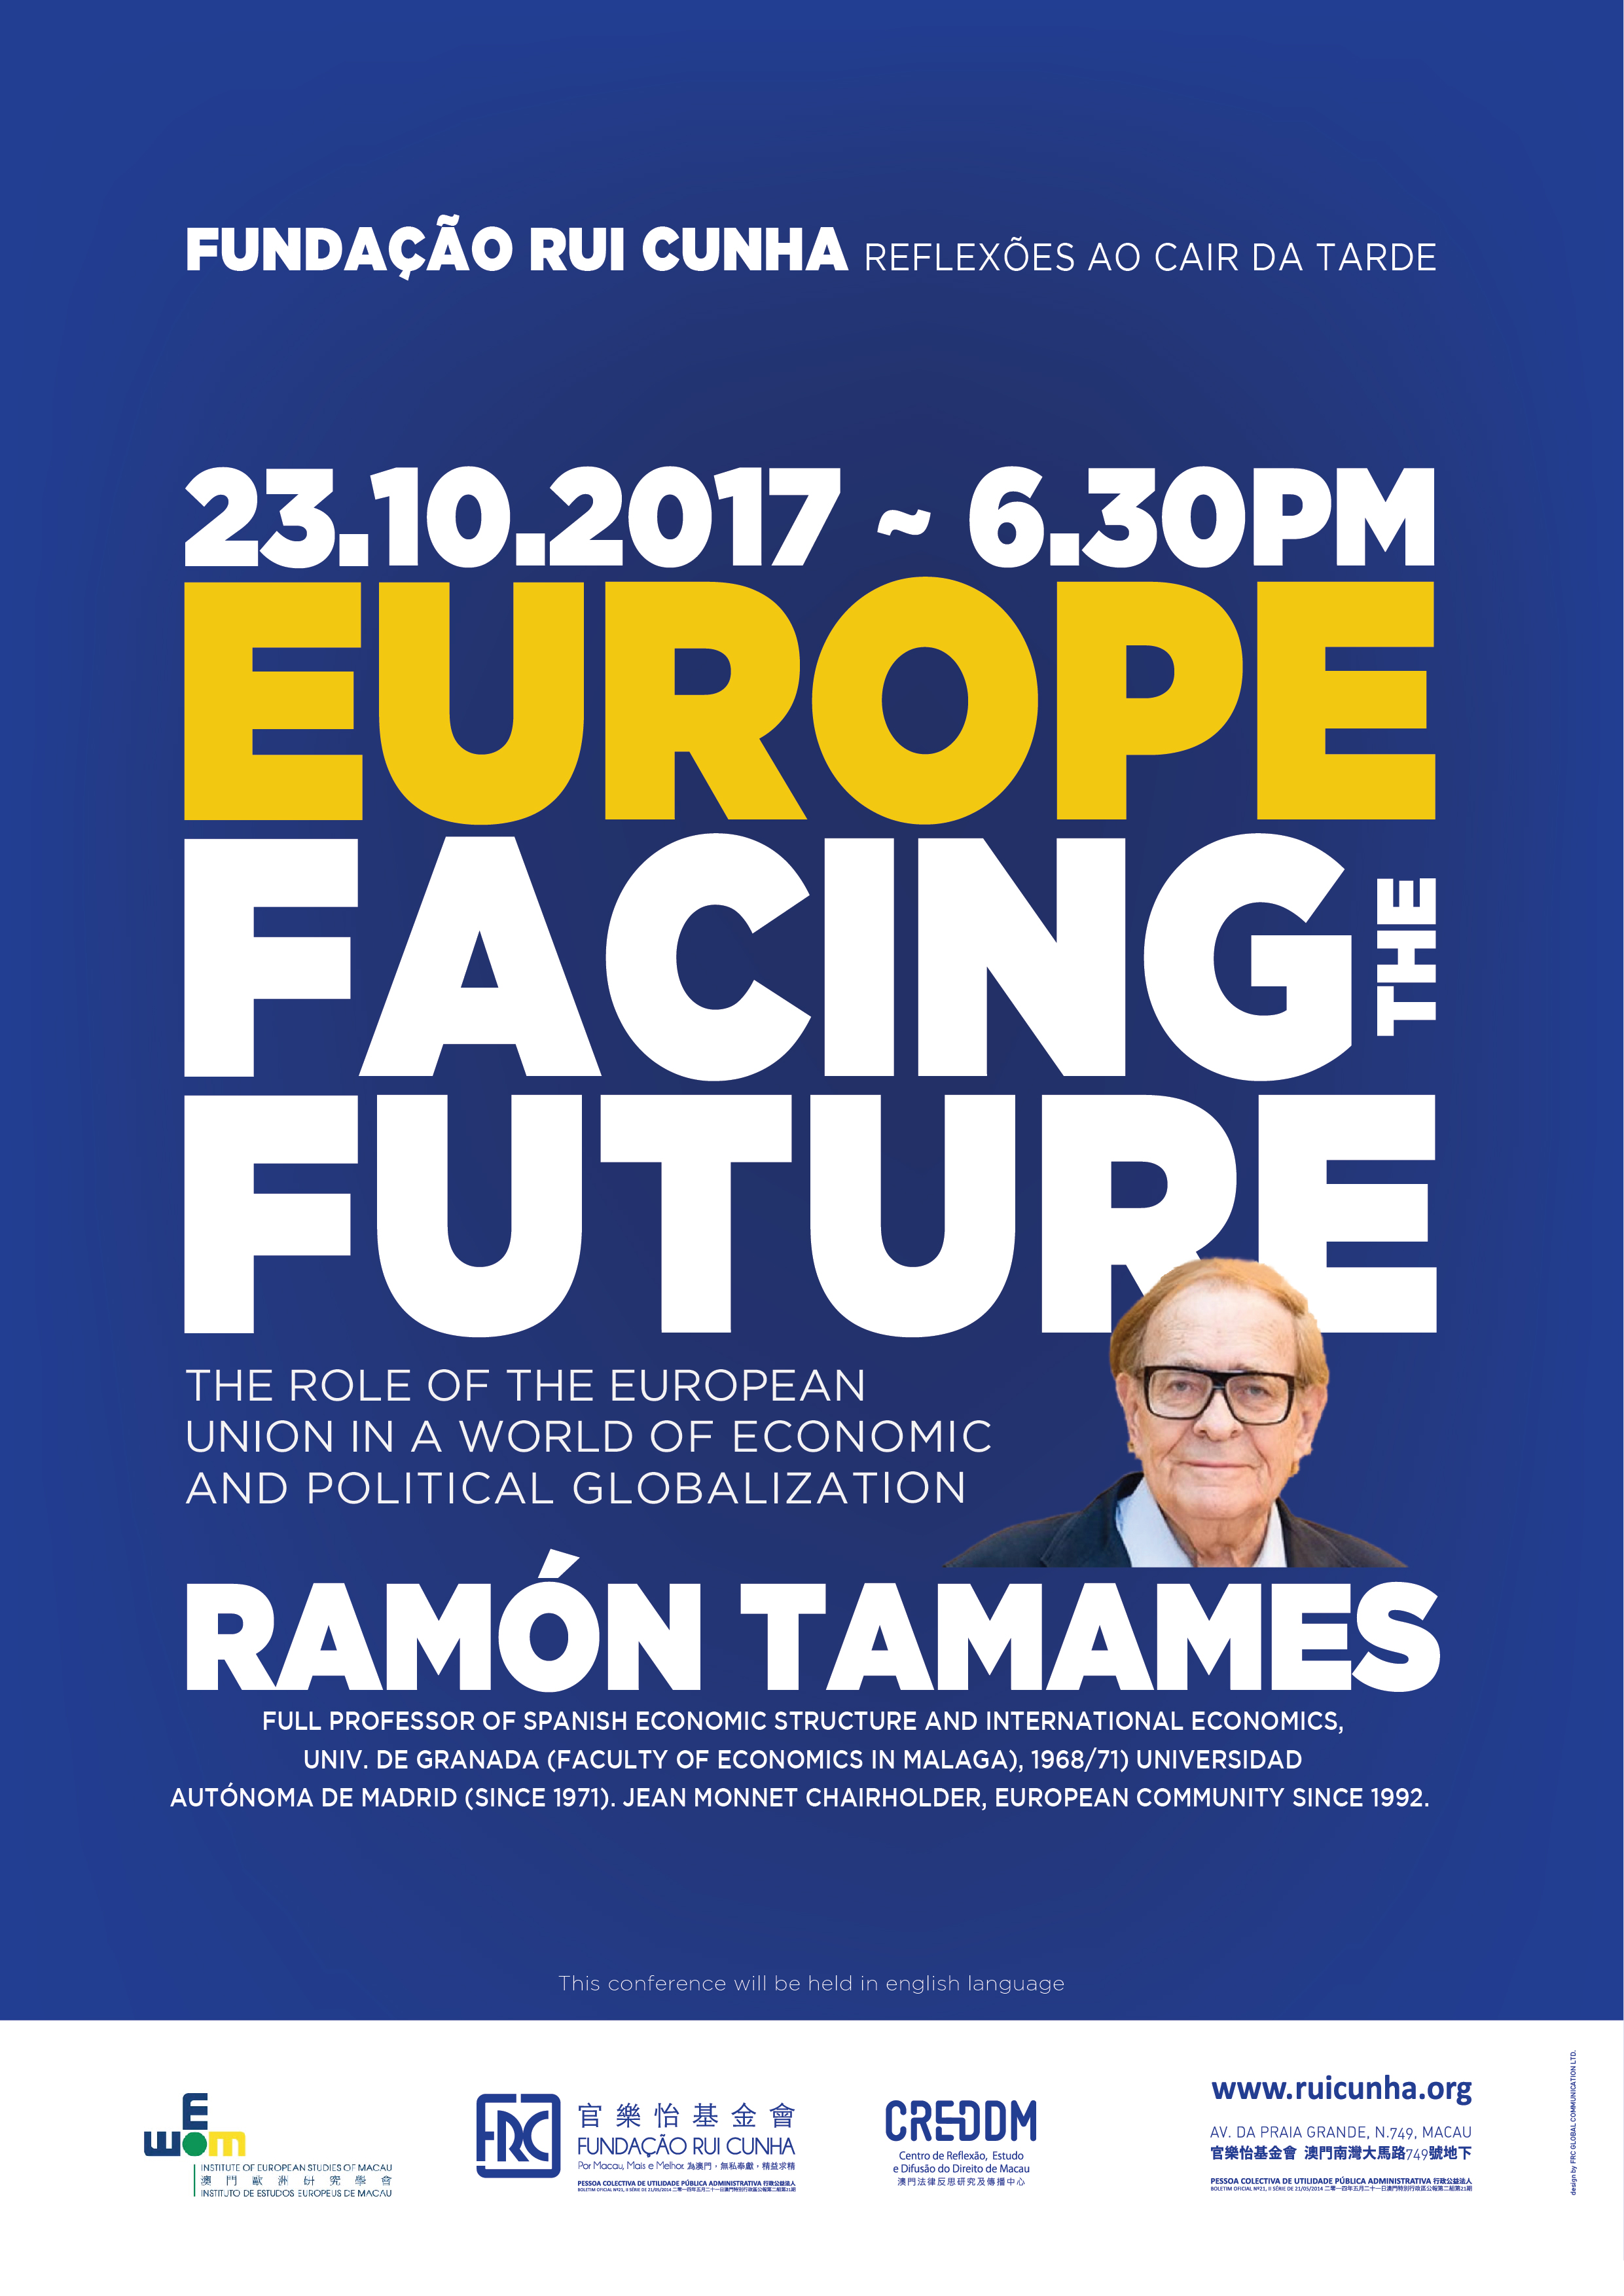 future of the european union How is a european identity significant to the future of the european union  how does it influence the future of the european union and its citizens.